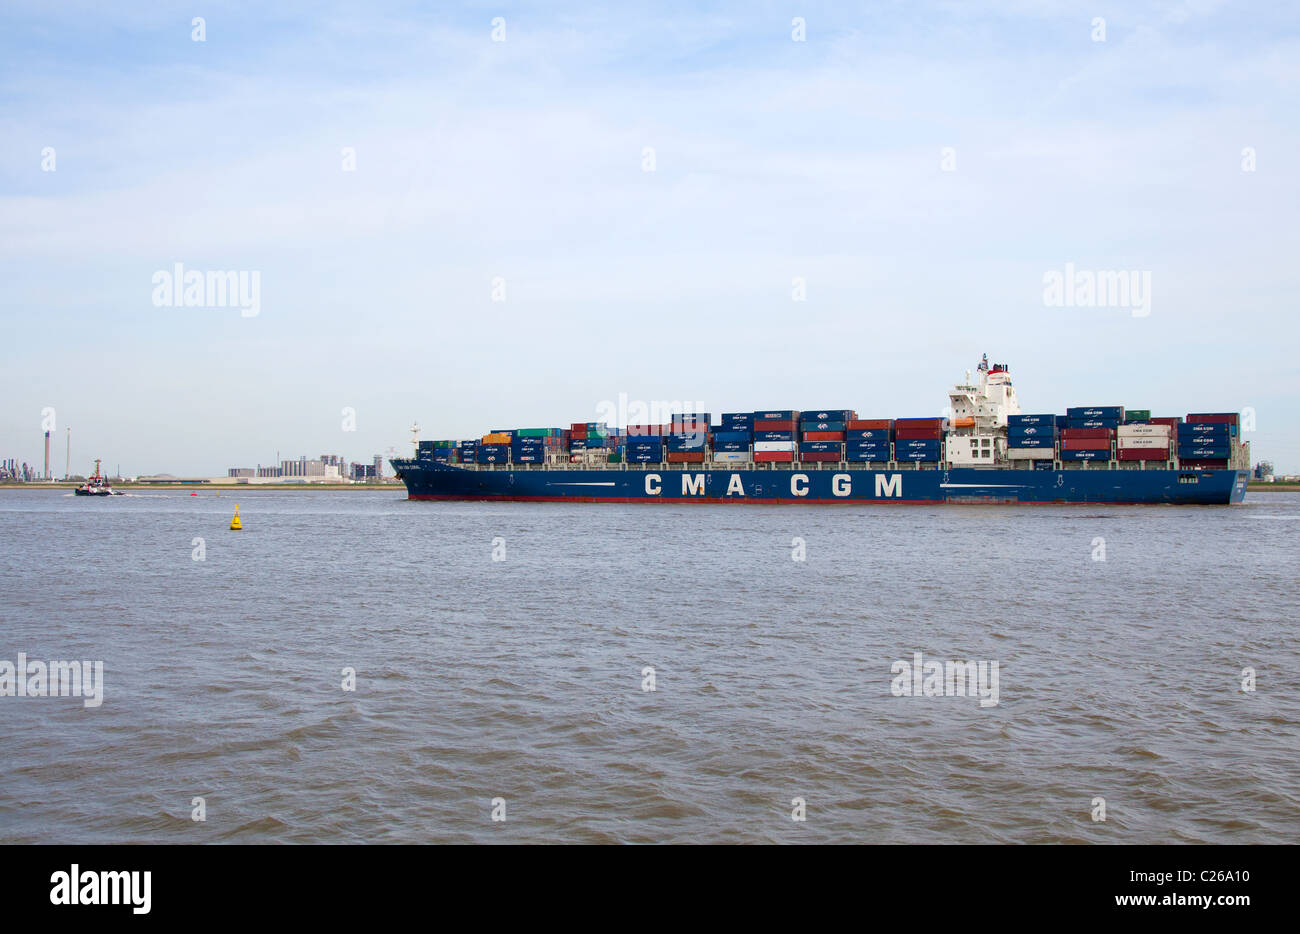 The containership Coral from CMA CGM in the harbor of Antwerp - Stock Image